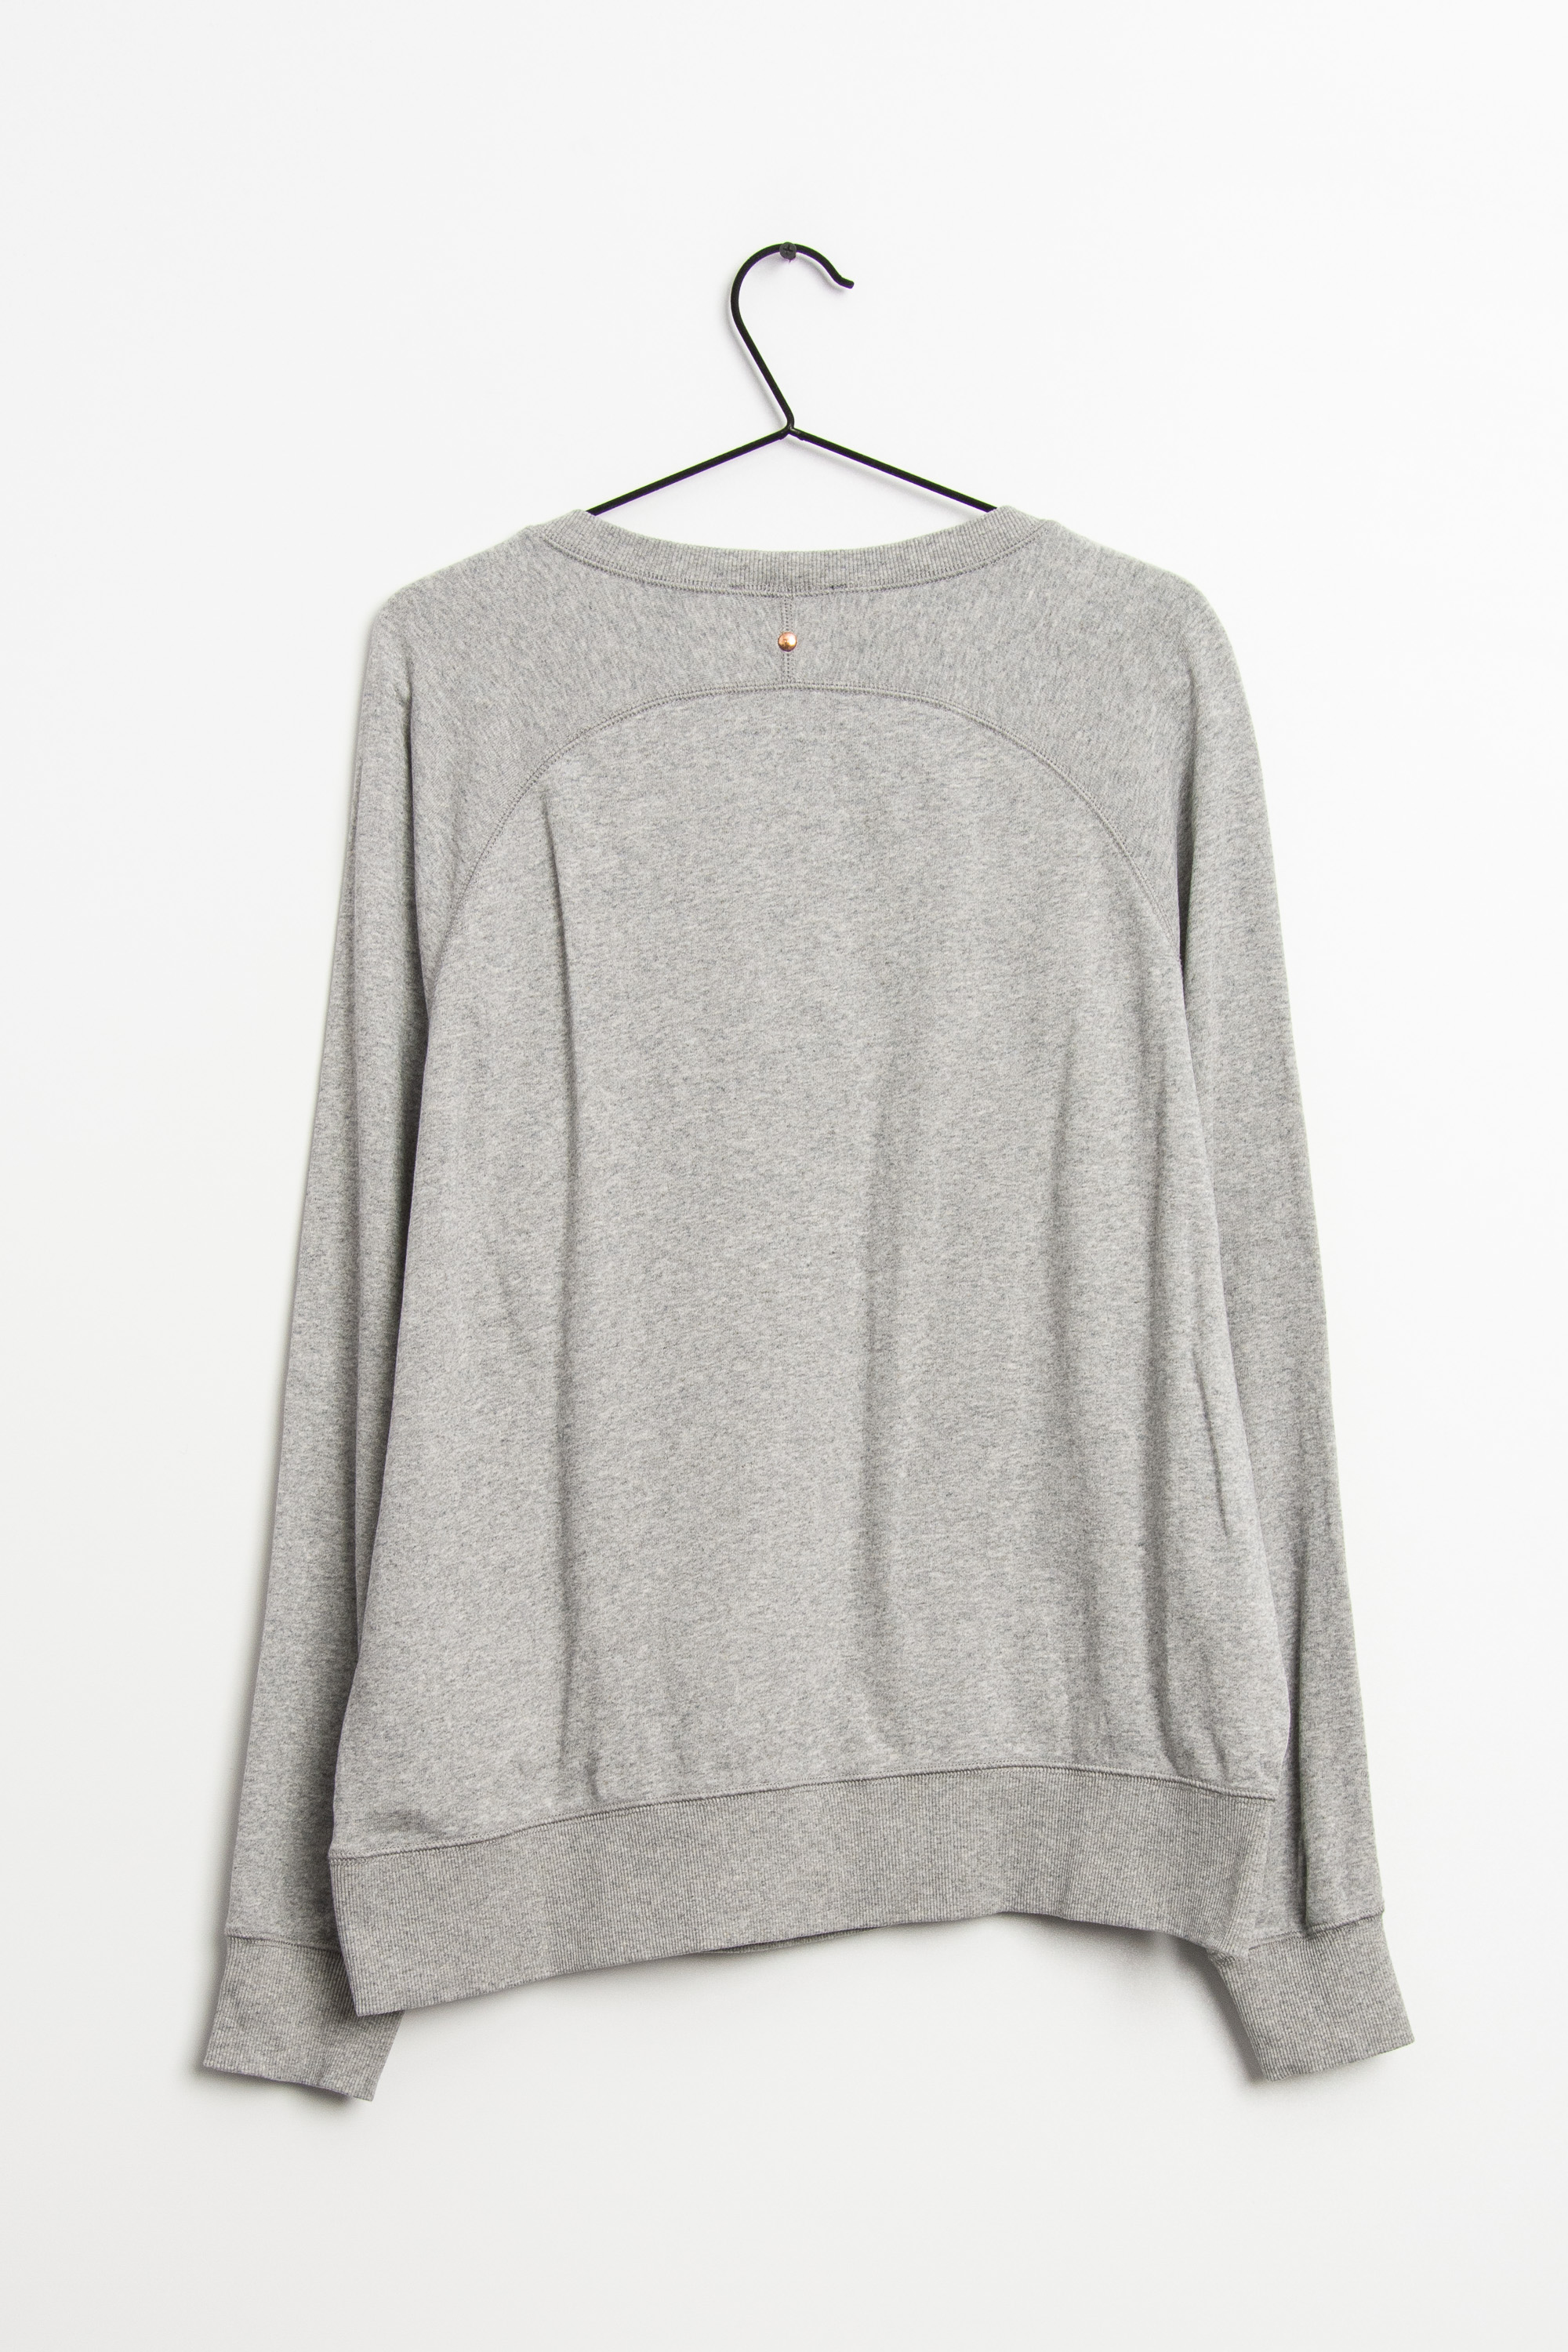 Diesel Sweat / Fleece Grau Gr.L